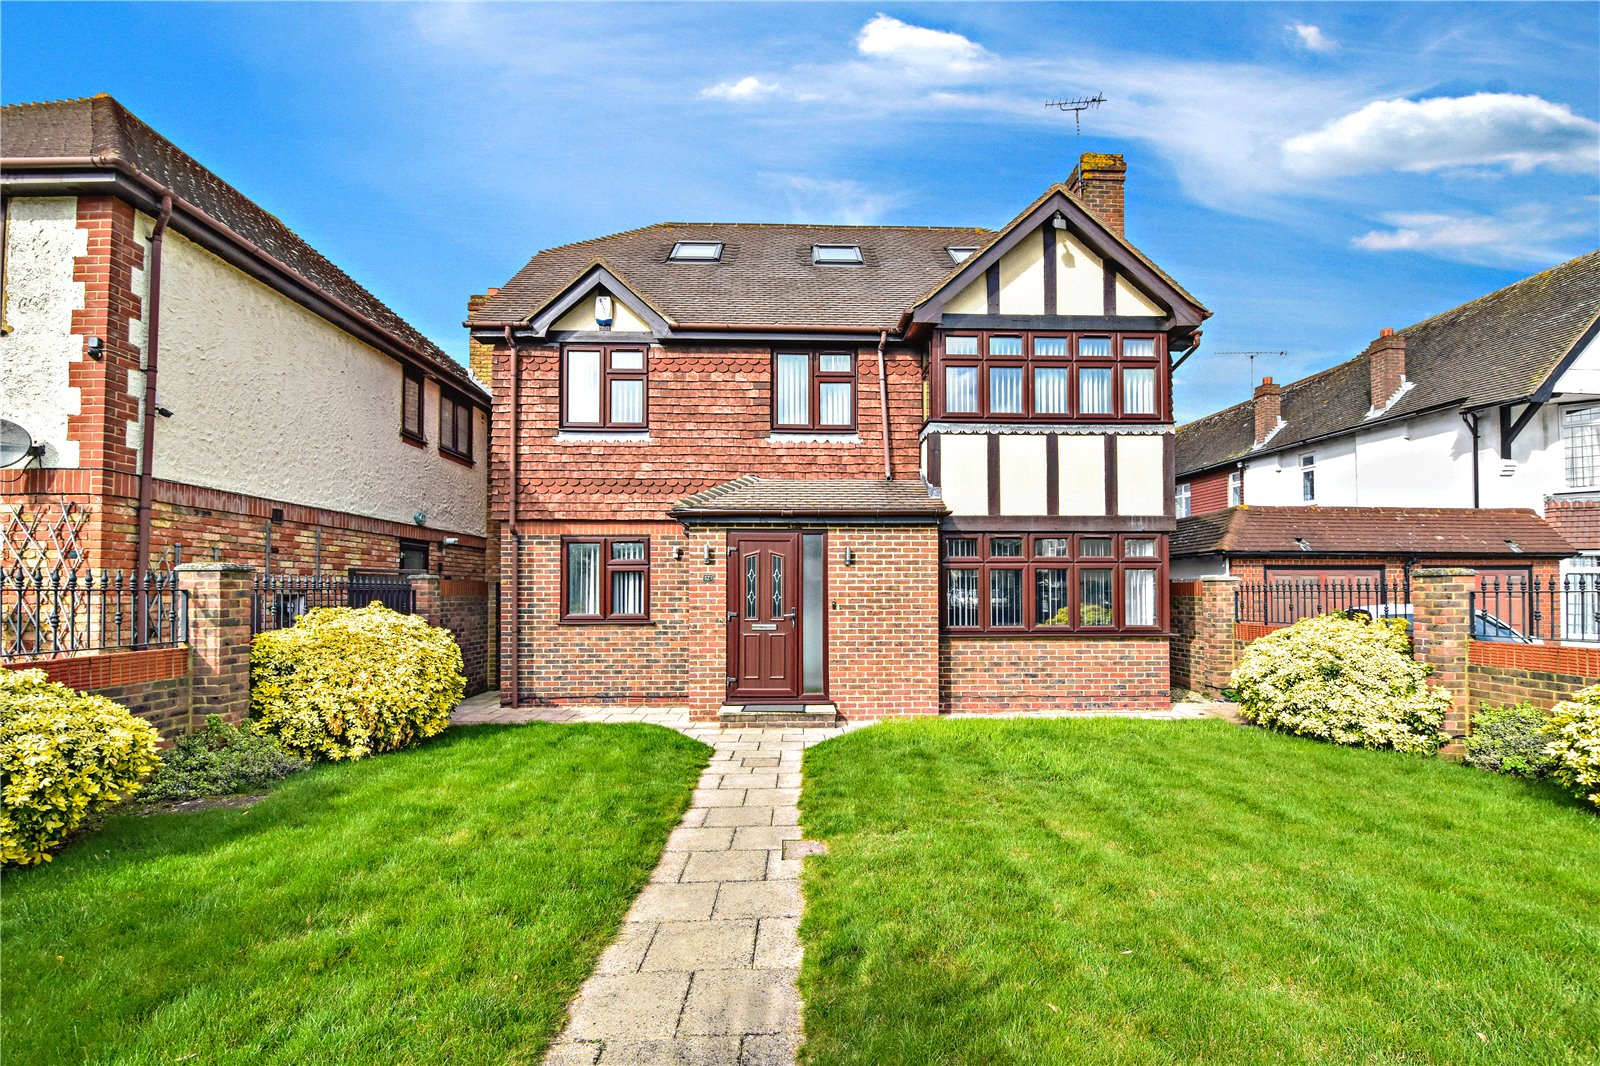 Shepherds Lane, West Dartford, Kent, DA1